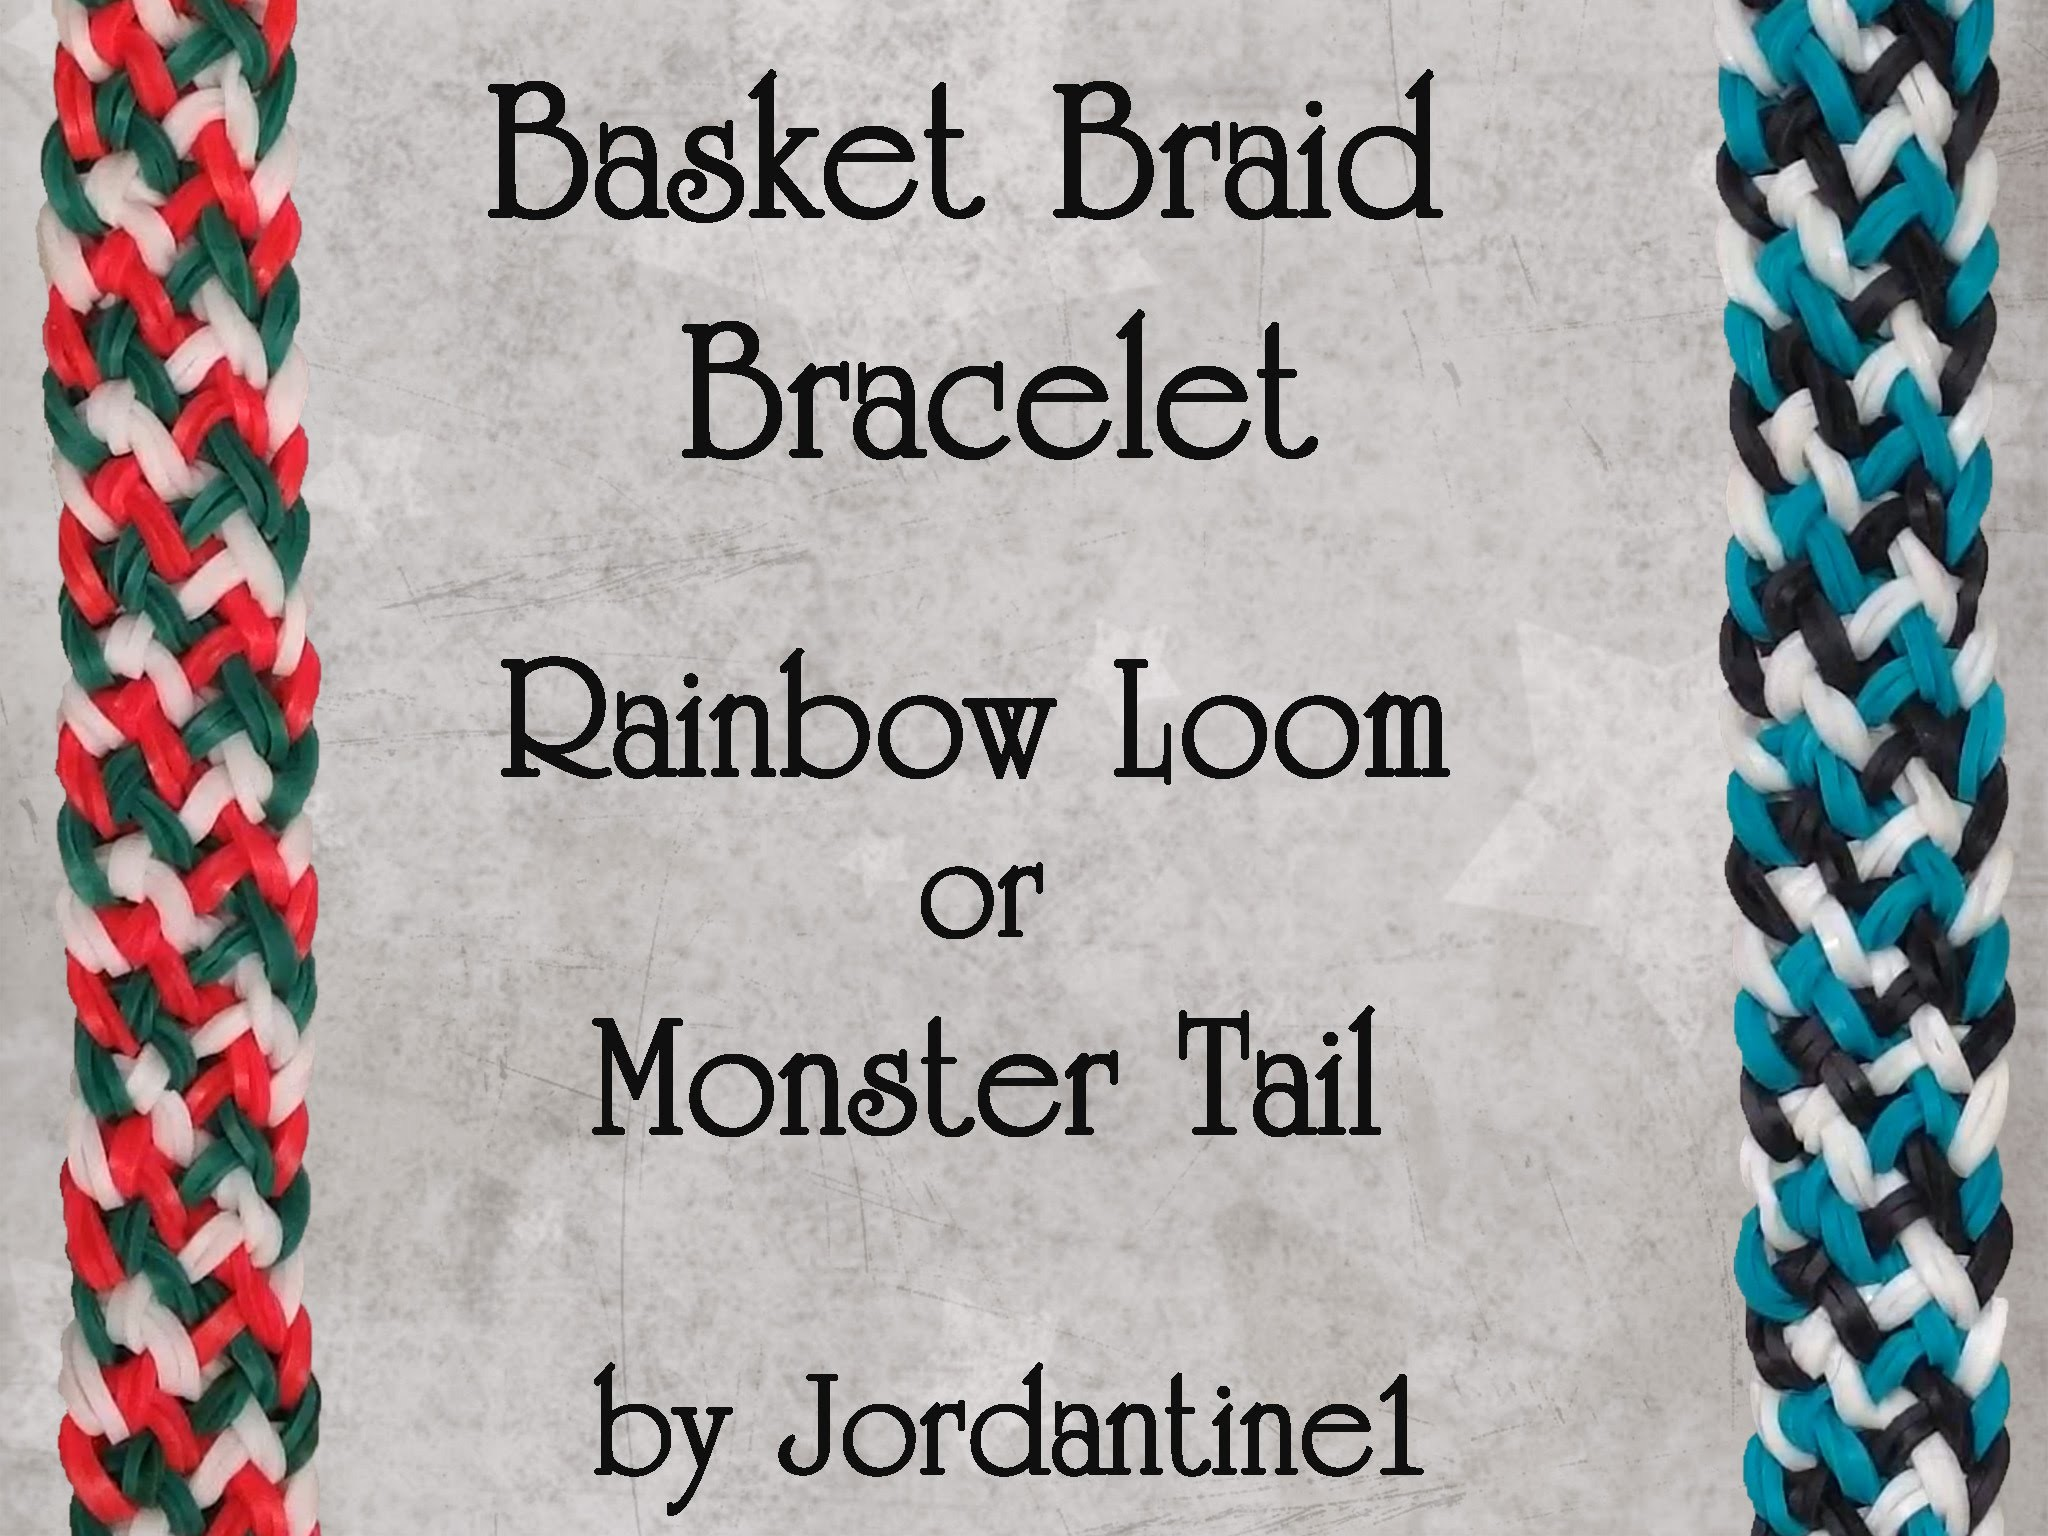 New Basket Braid Bracelet - Rainbow Loom or Monster Tail